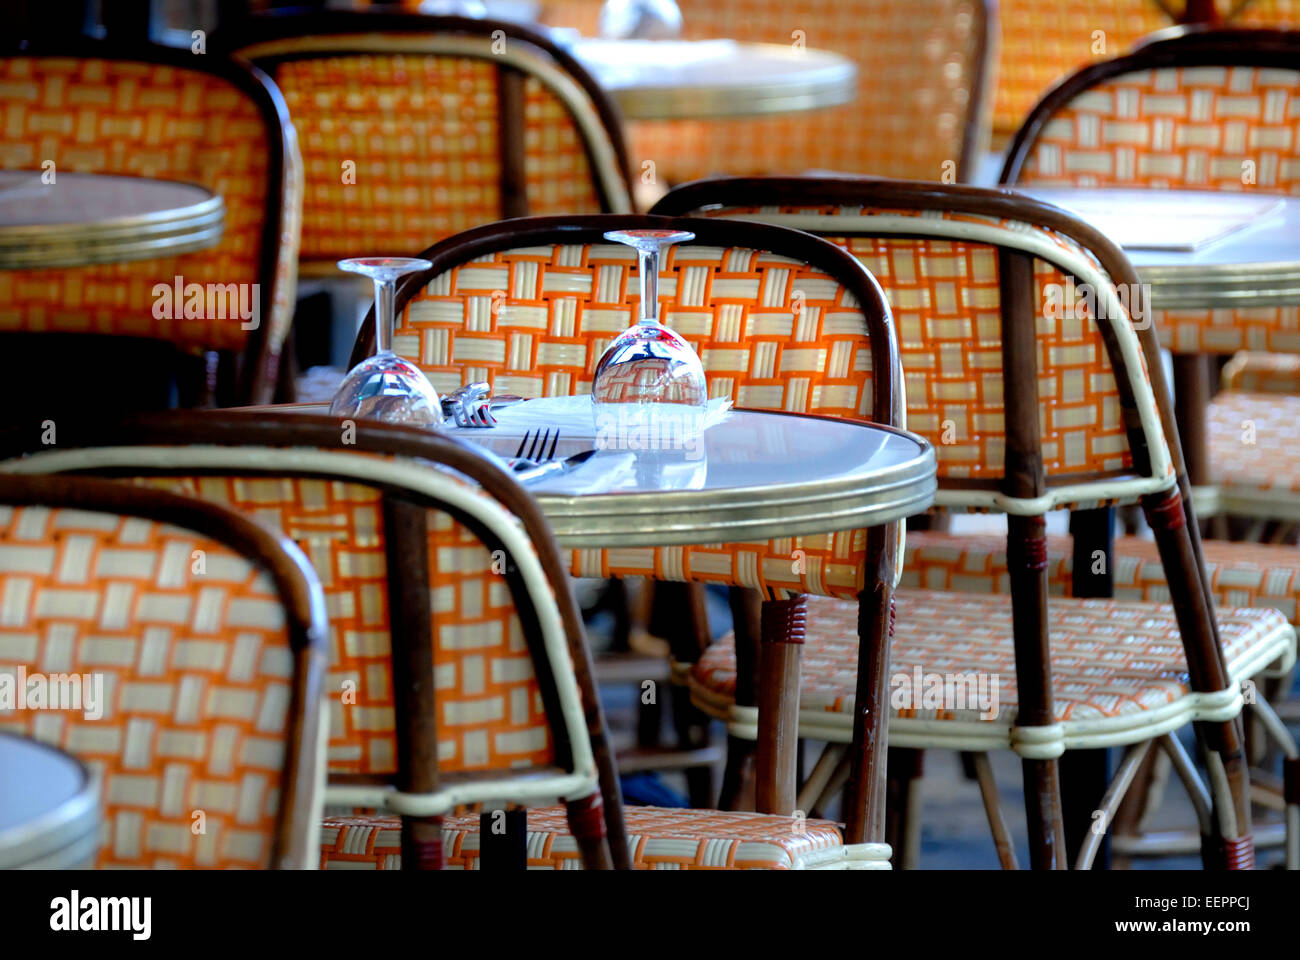 parisian cafe table and chairs herman miller swoop chair paris stock photos france typical image